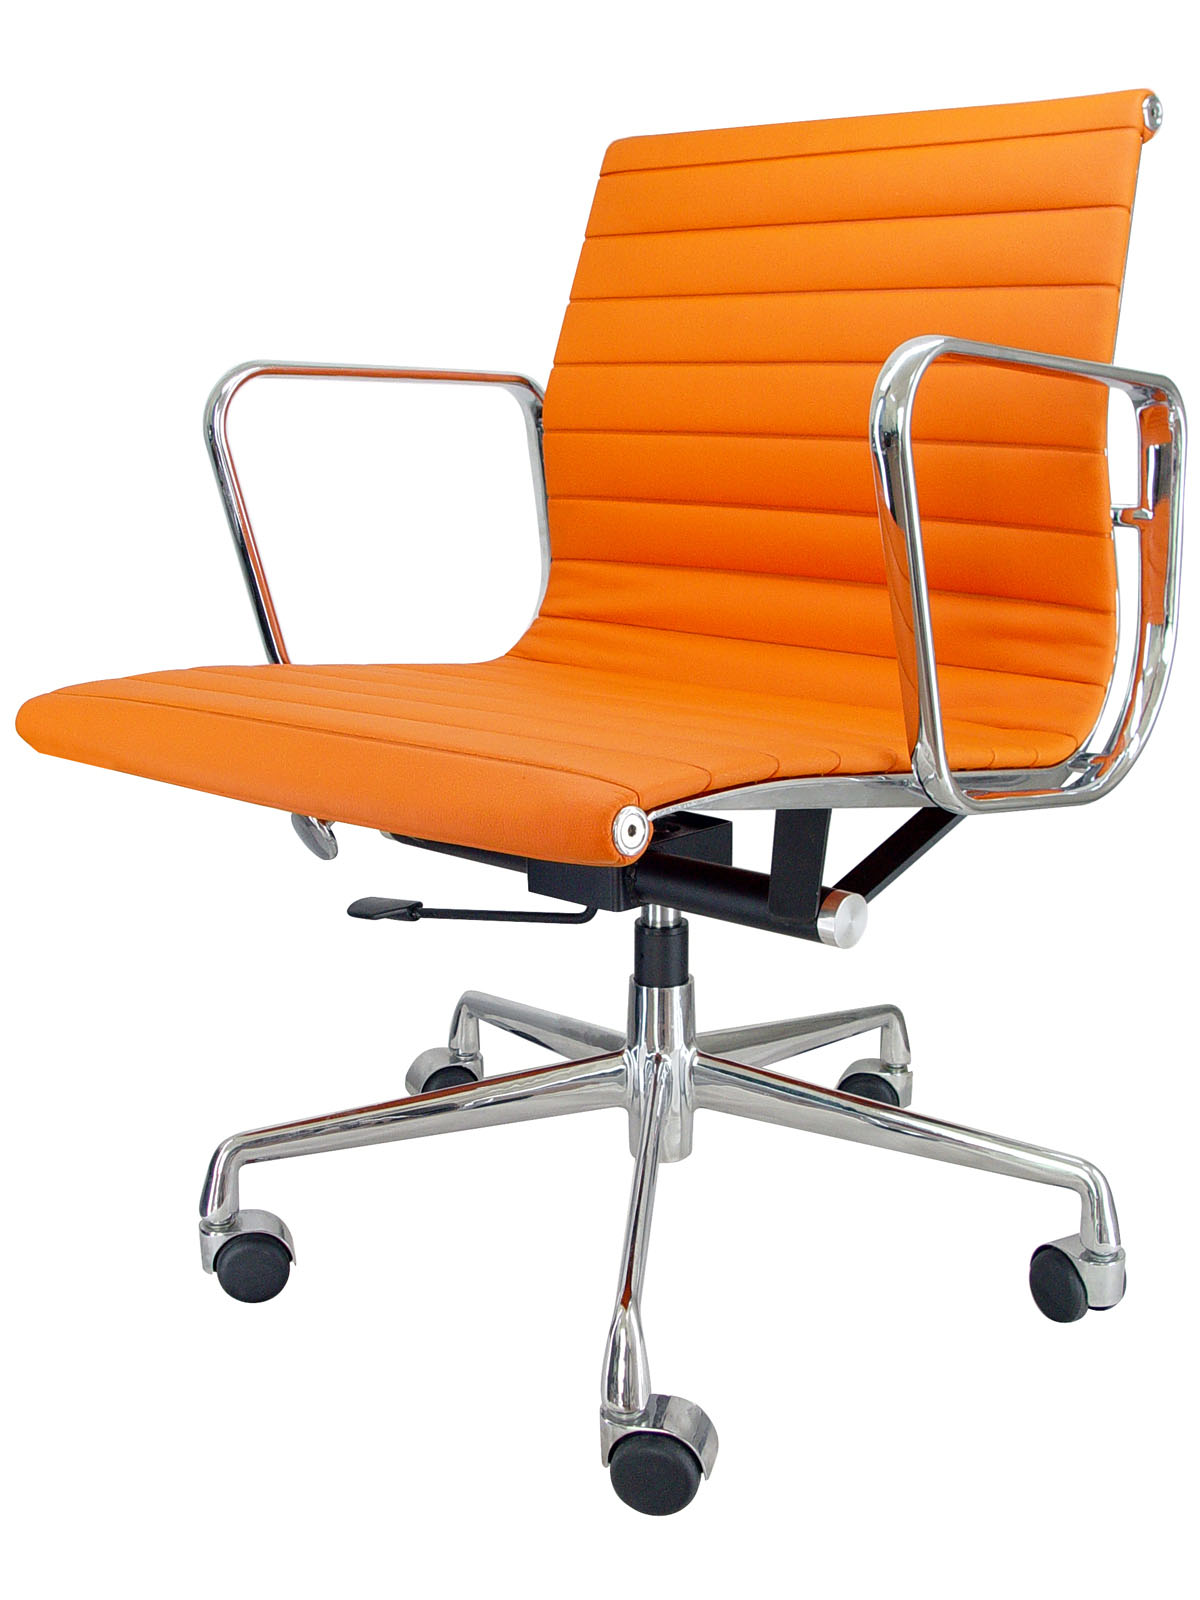 eames office chair ea 117 office office chairs bedroompretty images office chair chairs eames